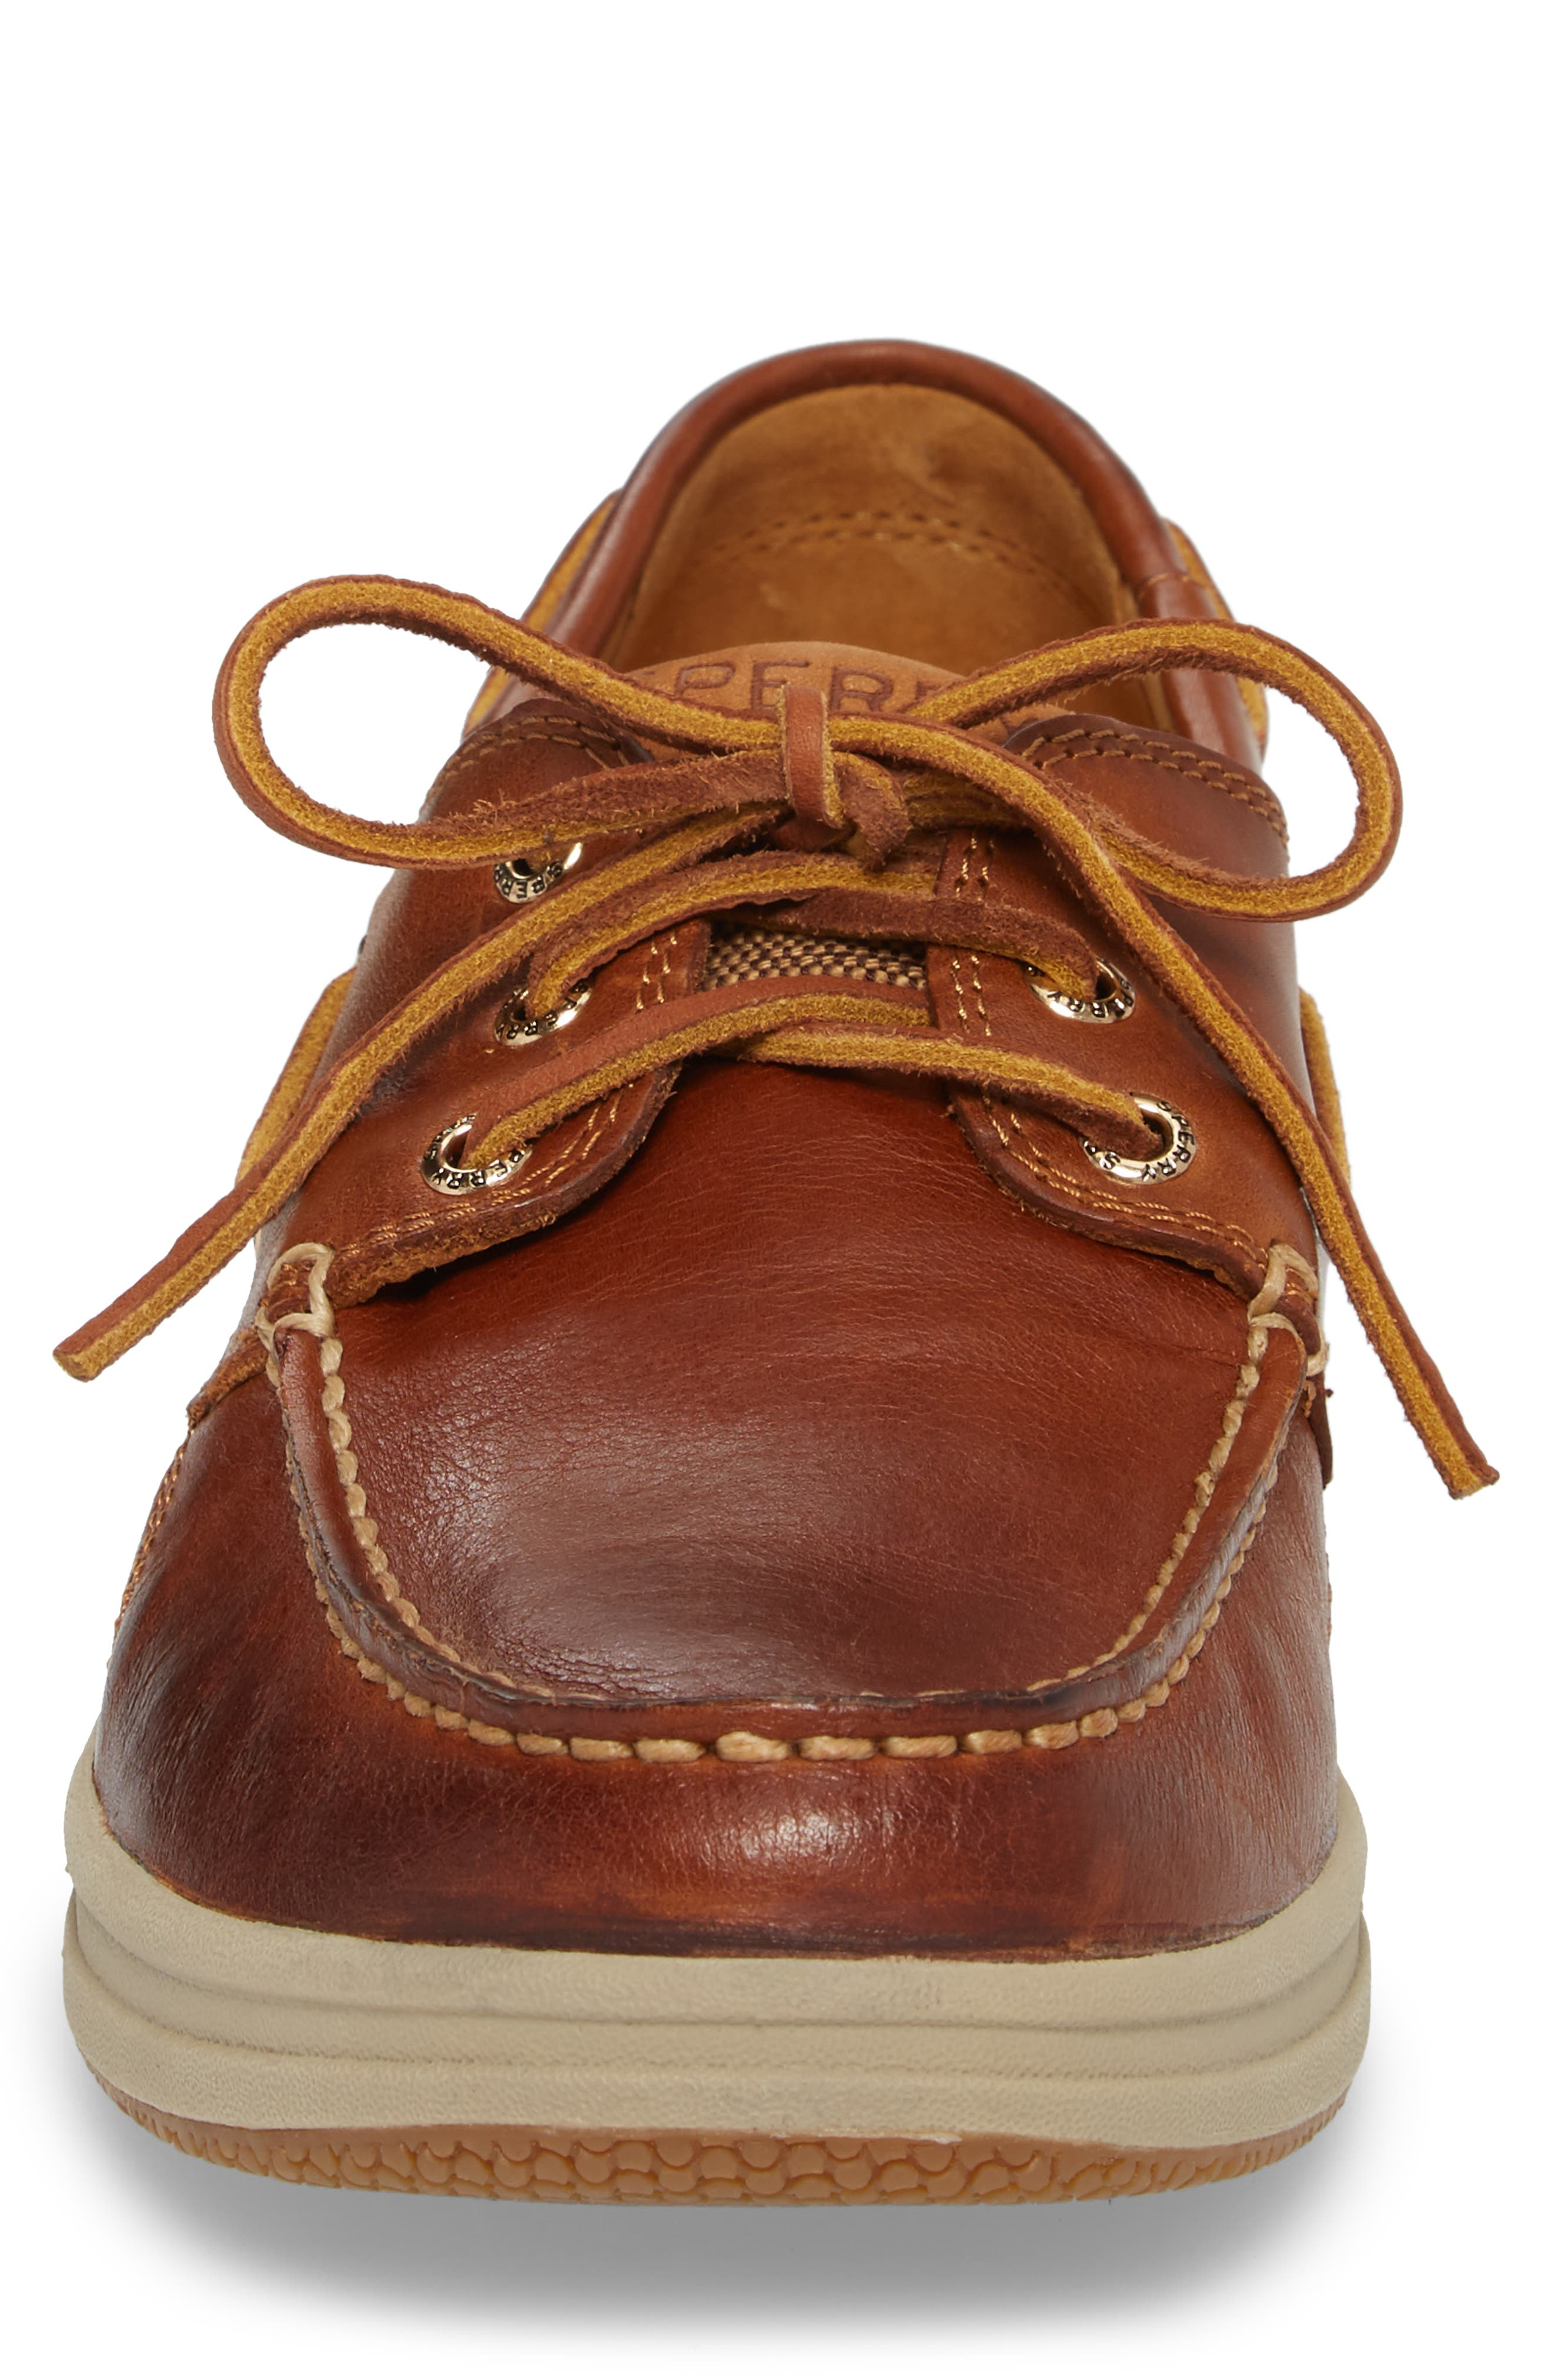 Gold Cup Gamefish Boat Shoe,                             Alternate thumbnail 4, color,                             BROWN LEATHER